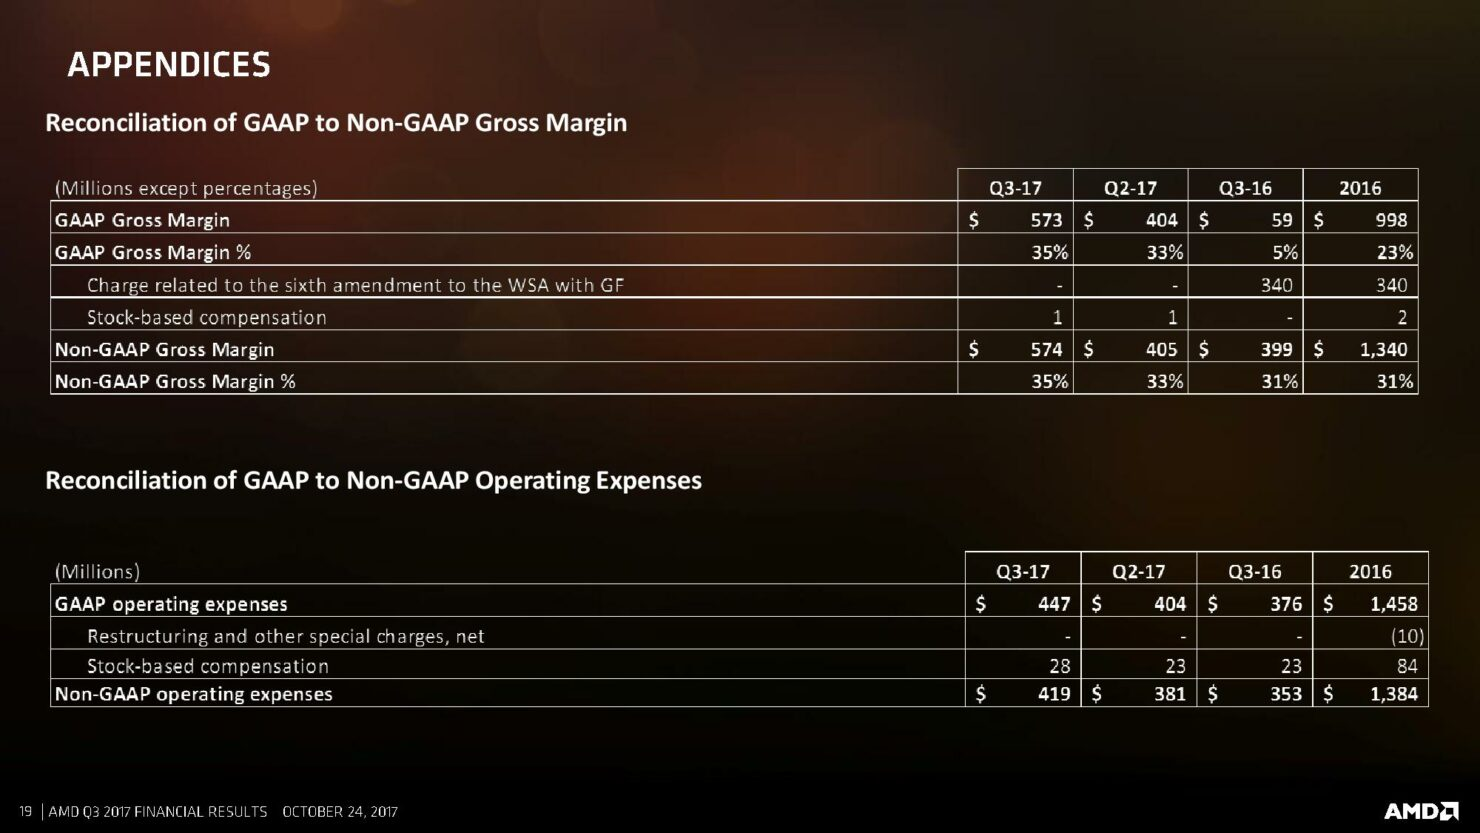 q3-17-amd-cfo-commentary-slides-page-019